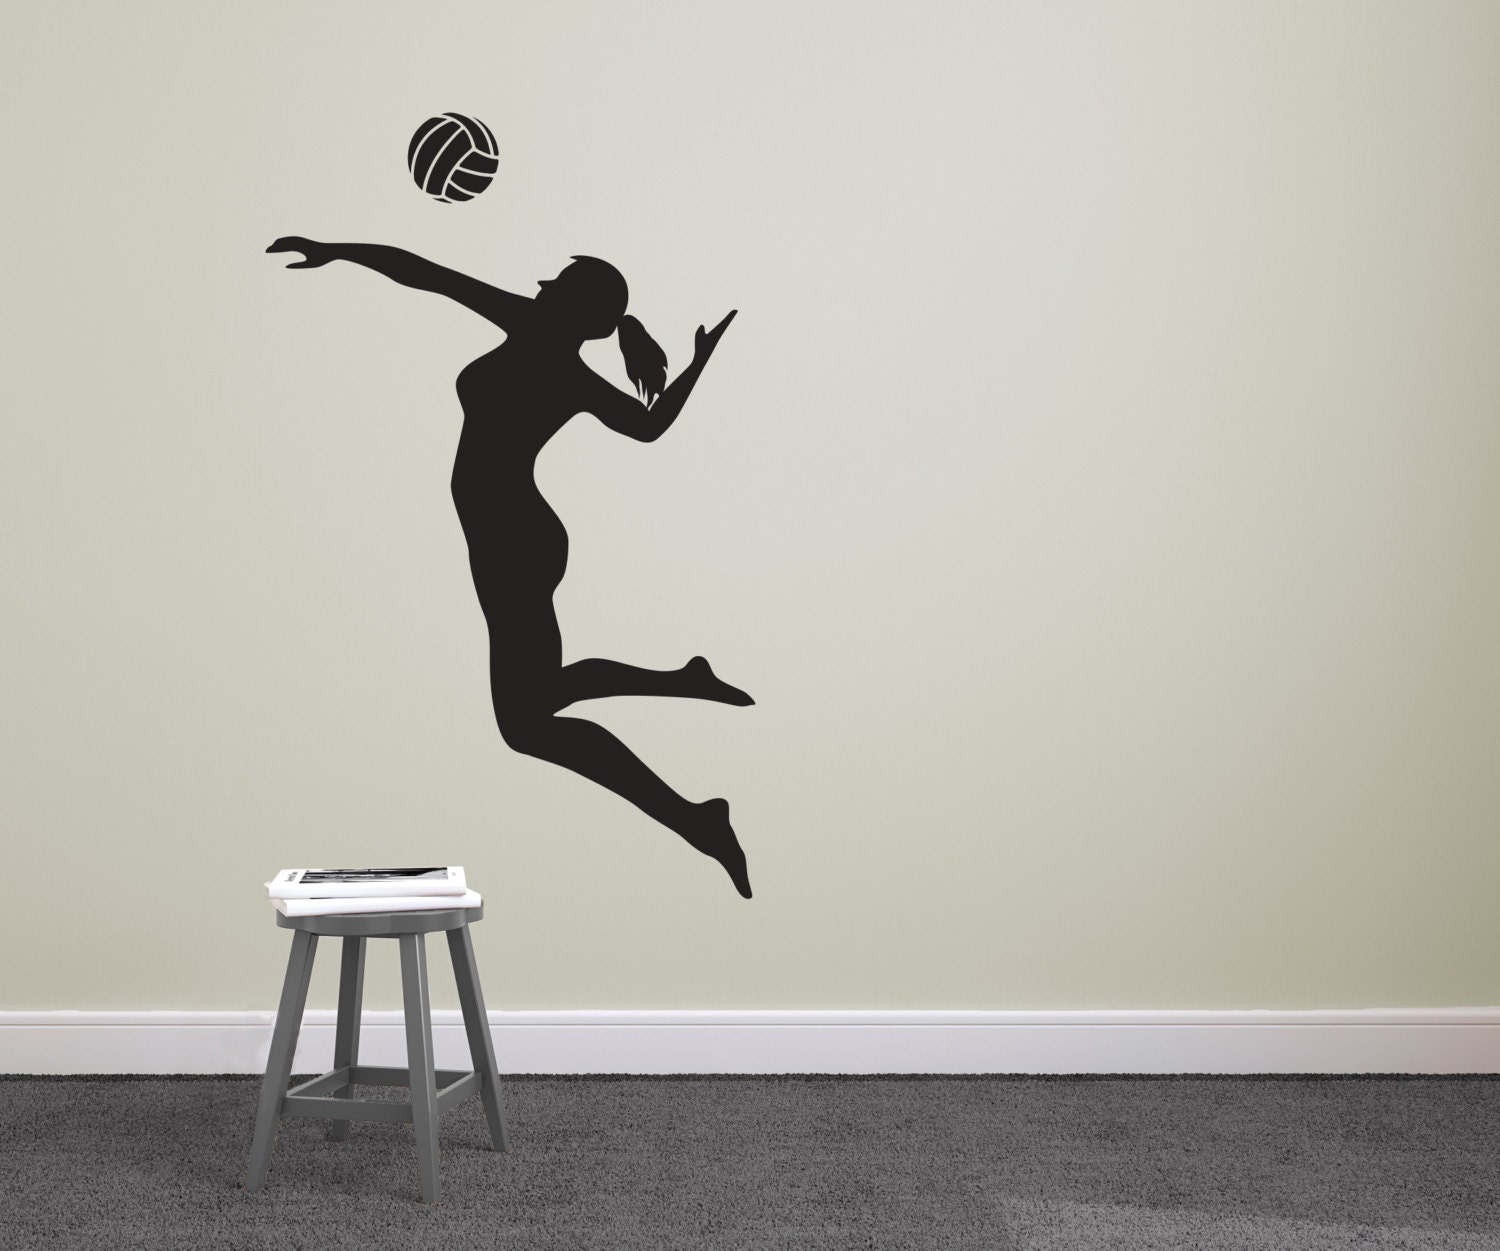 Volleyball player spiking silhouette sports wall decal zoom amipublicfo Gallery